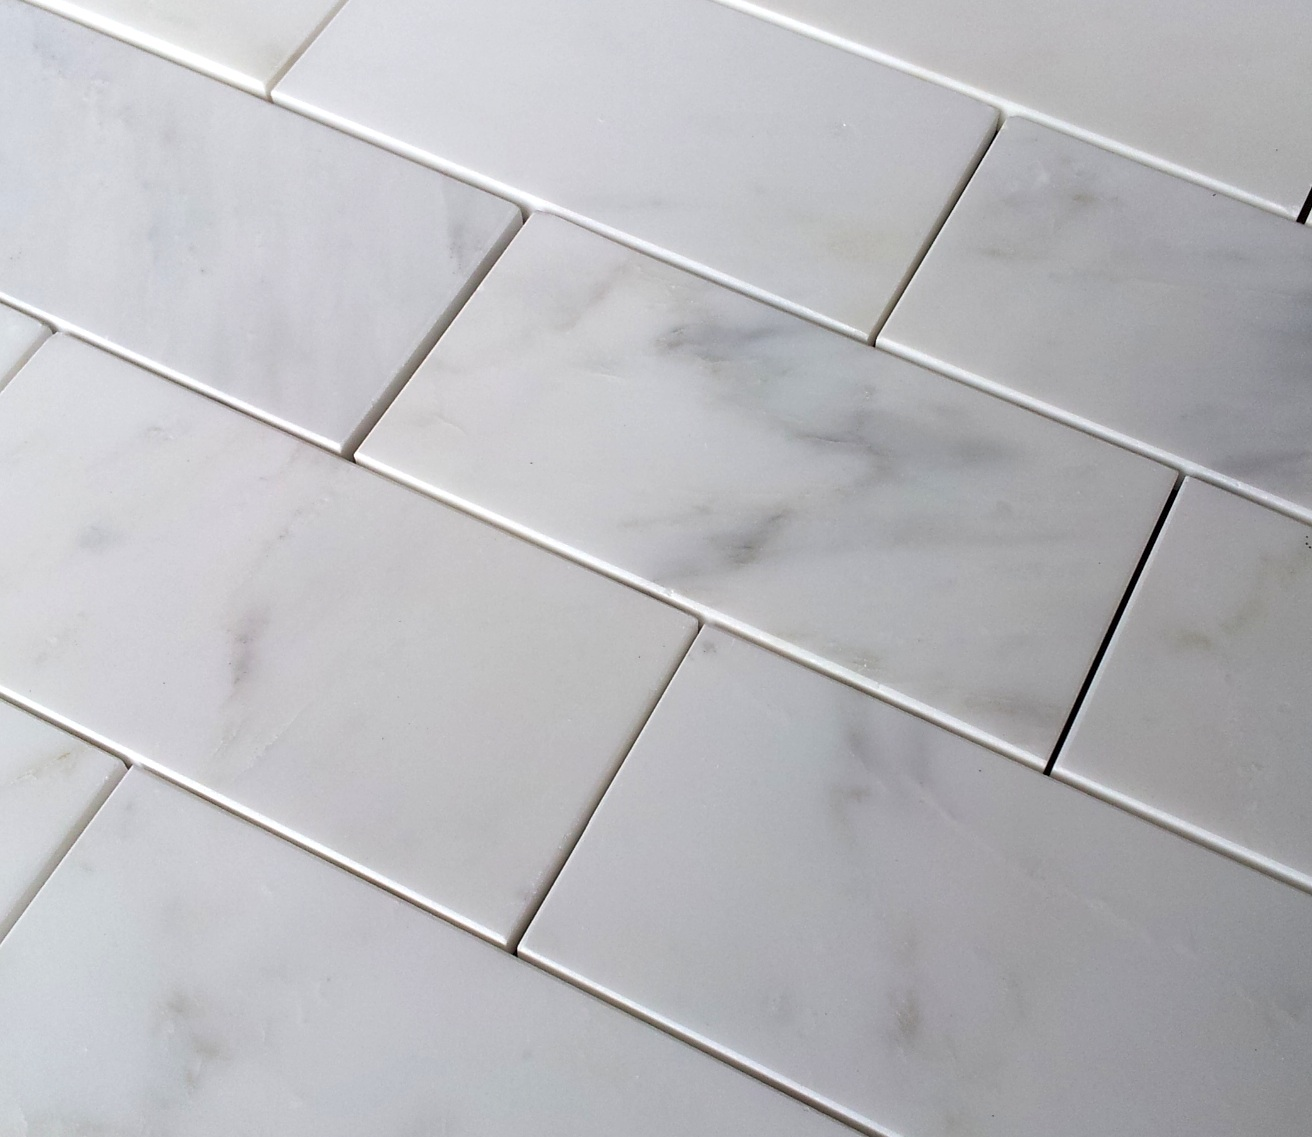 Carrara venato and bianco 36 subway tiles the builder depot blog carrara dailygadgetfo Choice Image